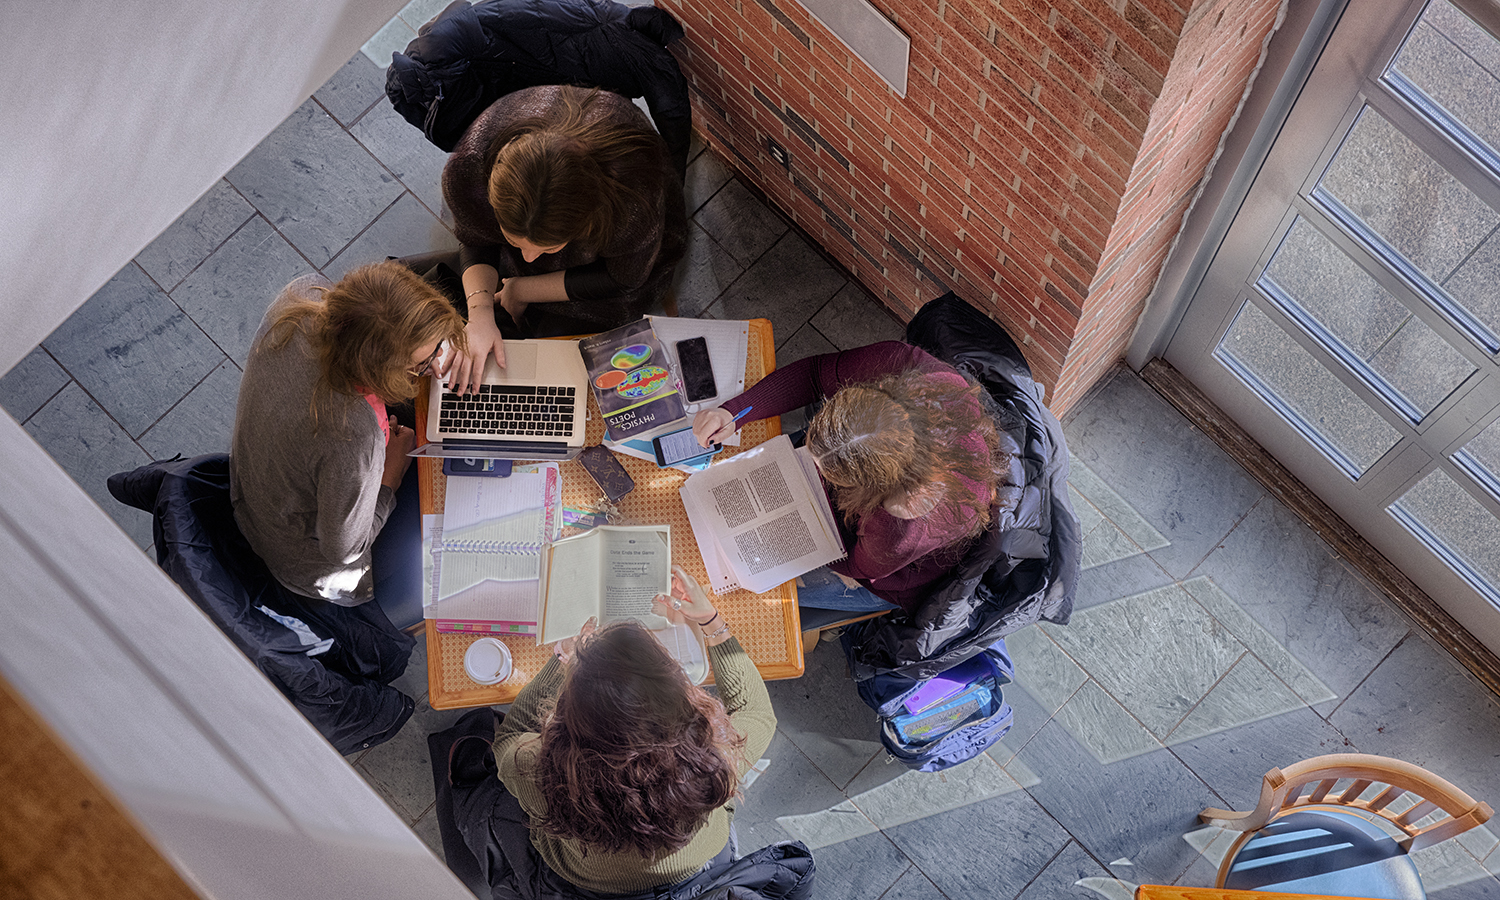 Students study in Cafe-0027